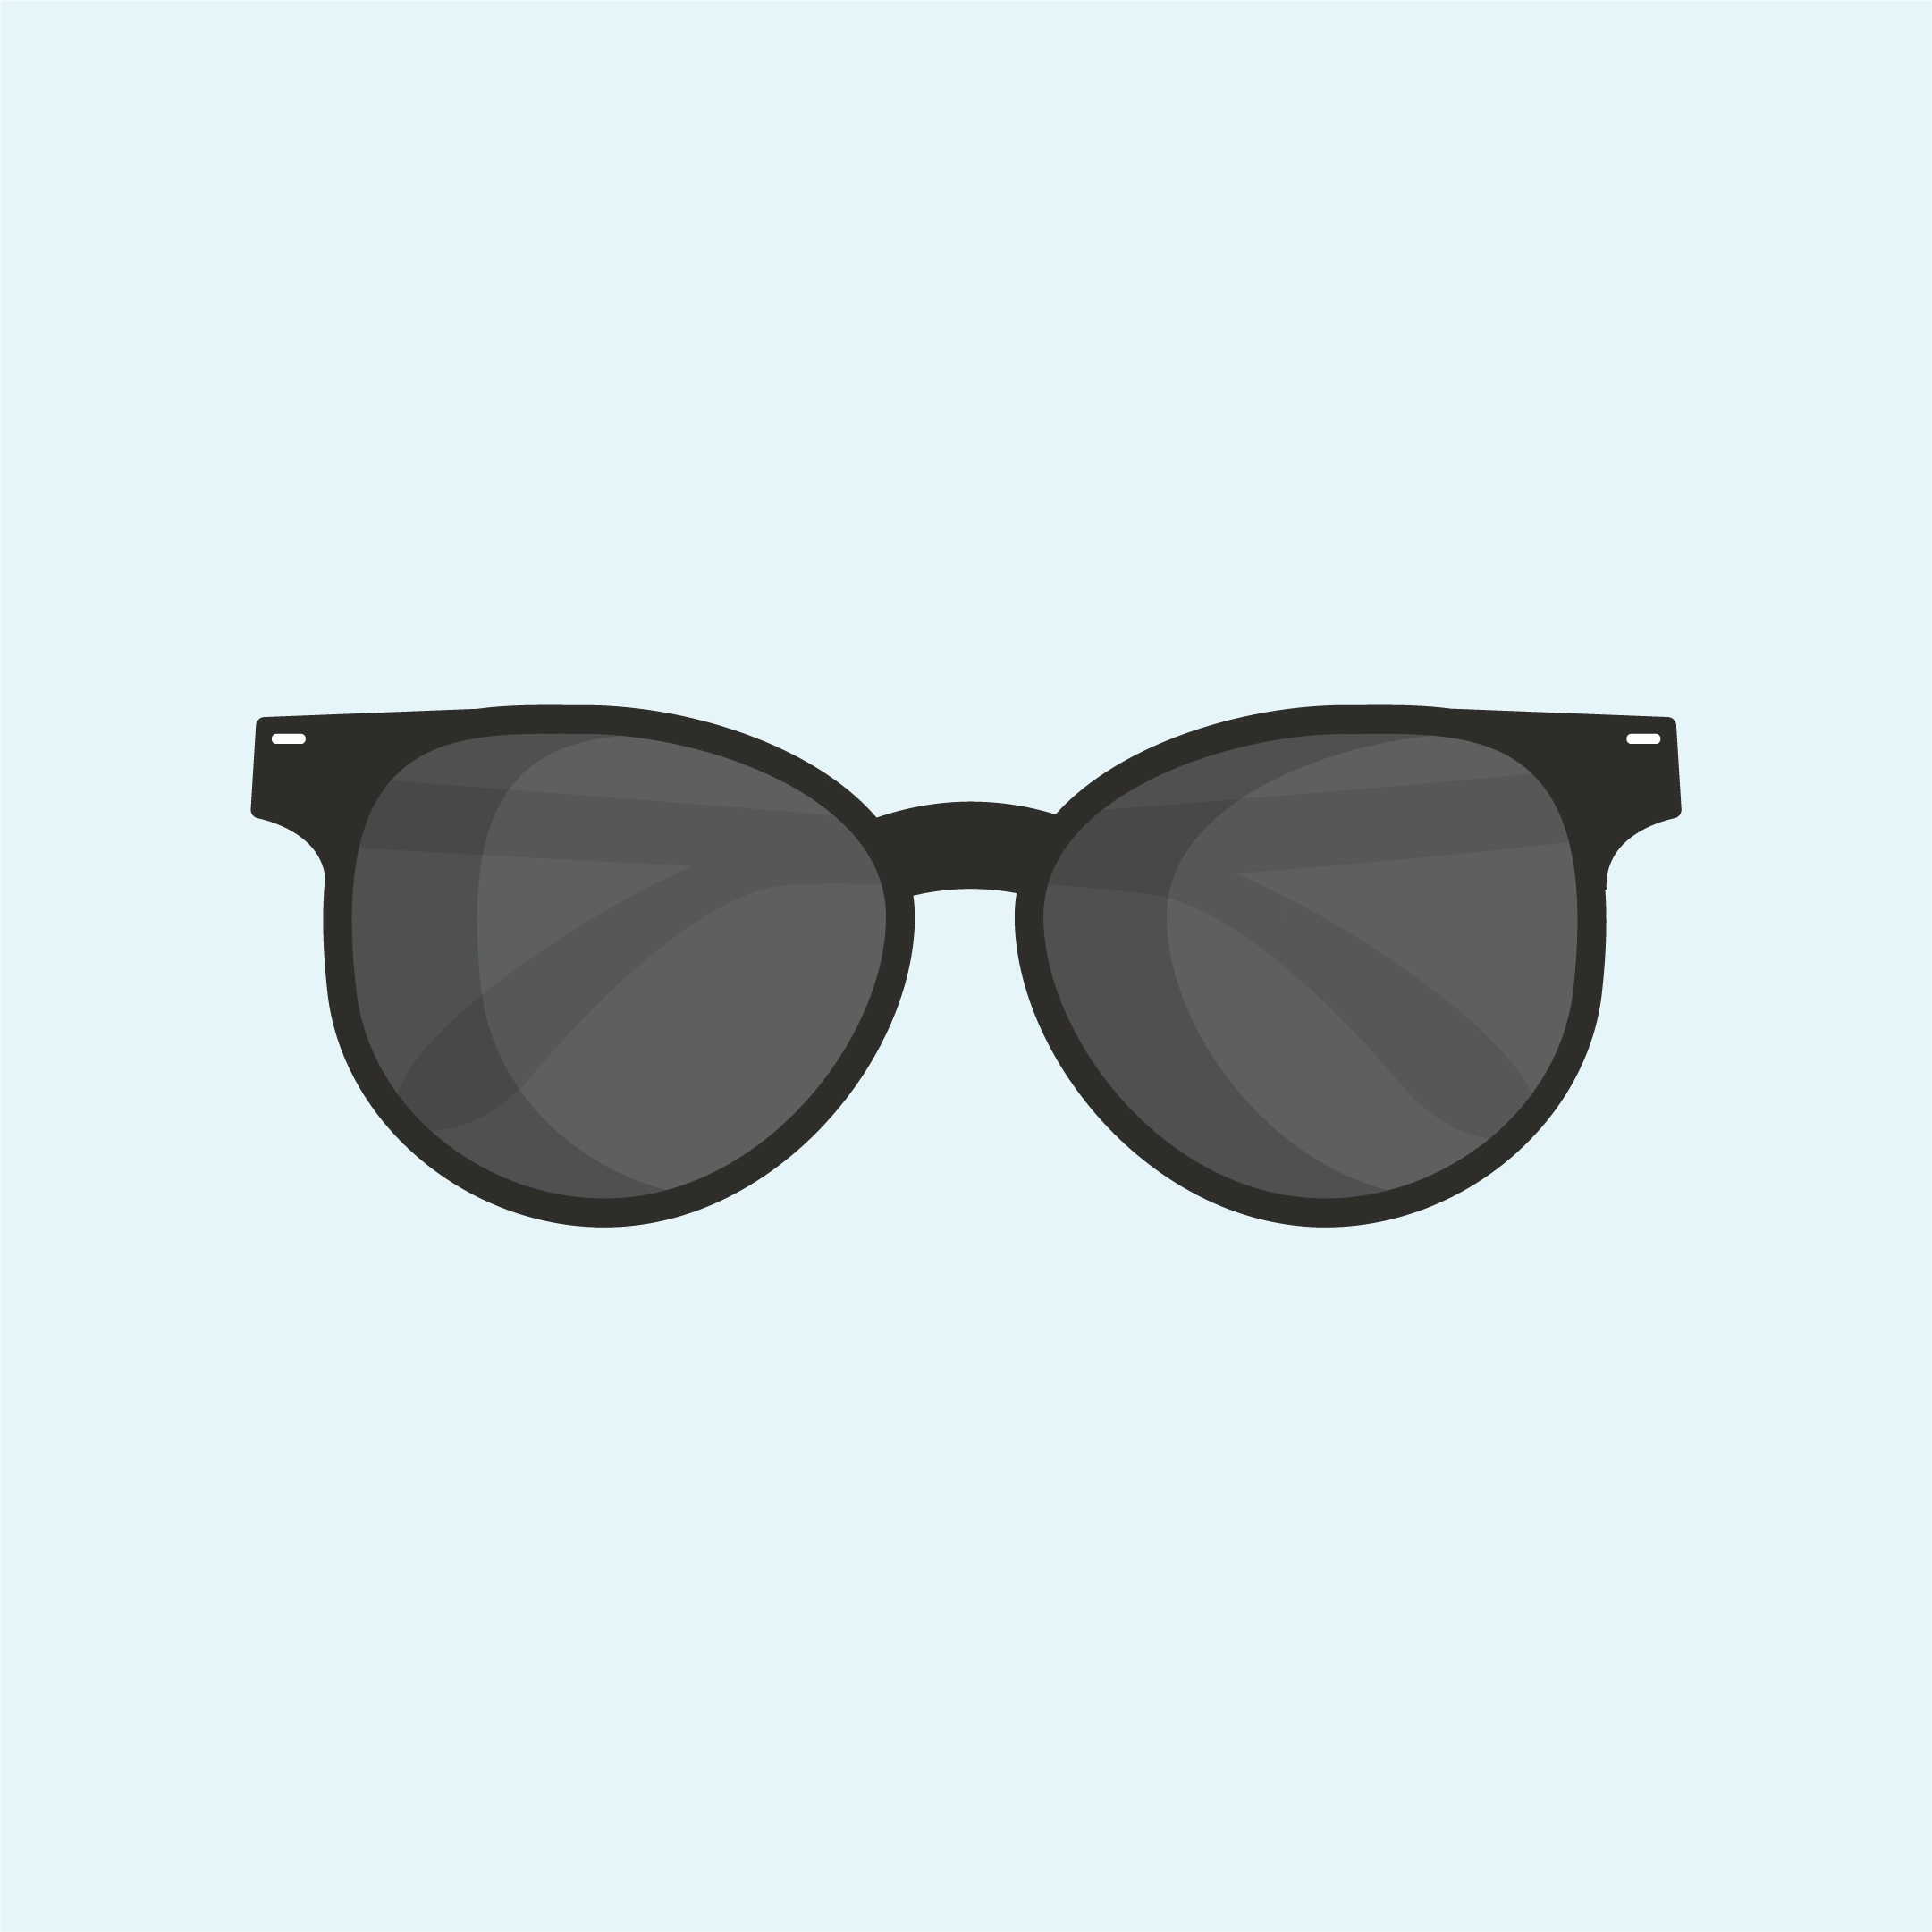 Vector illustration of black sunglasses in flat design style